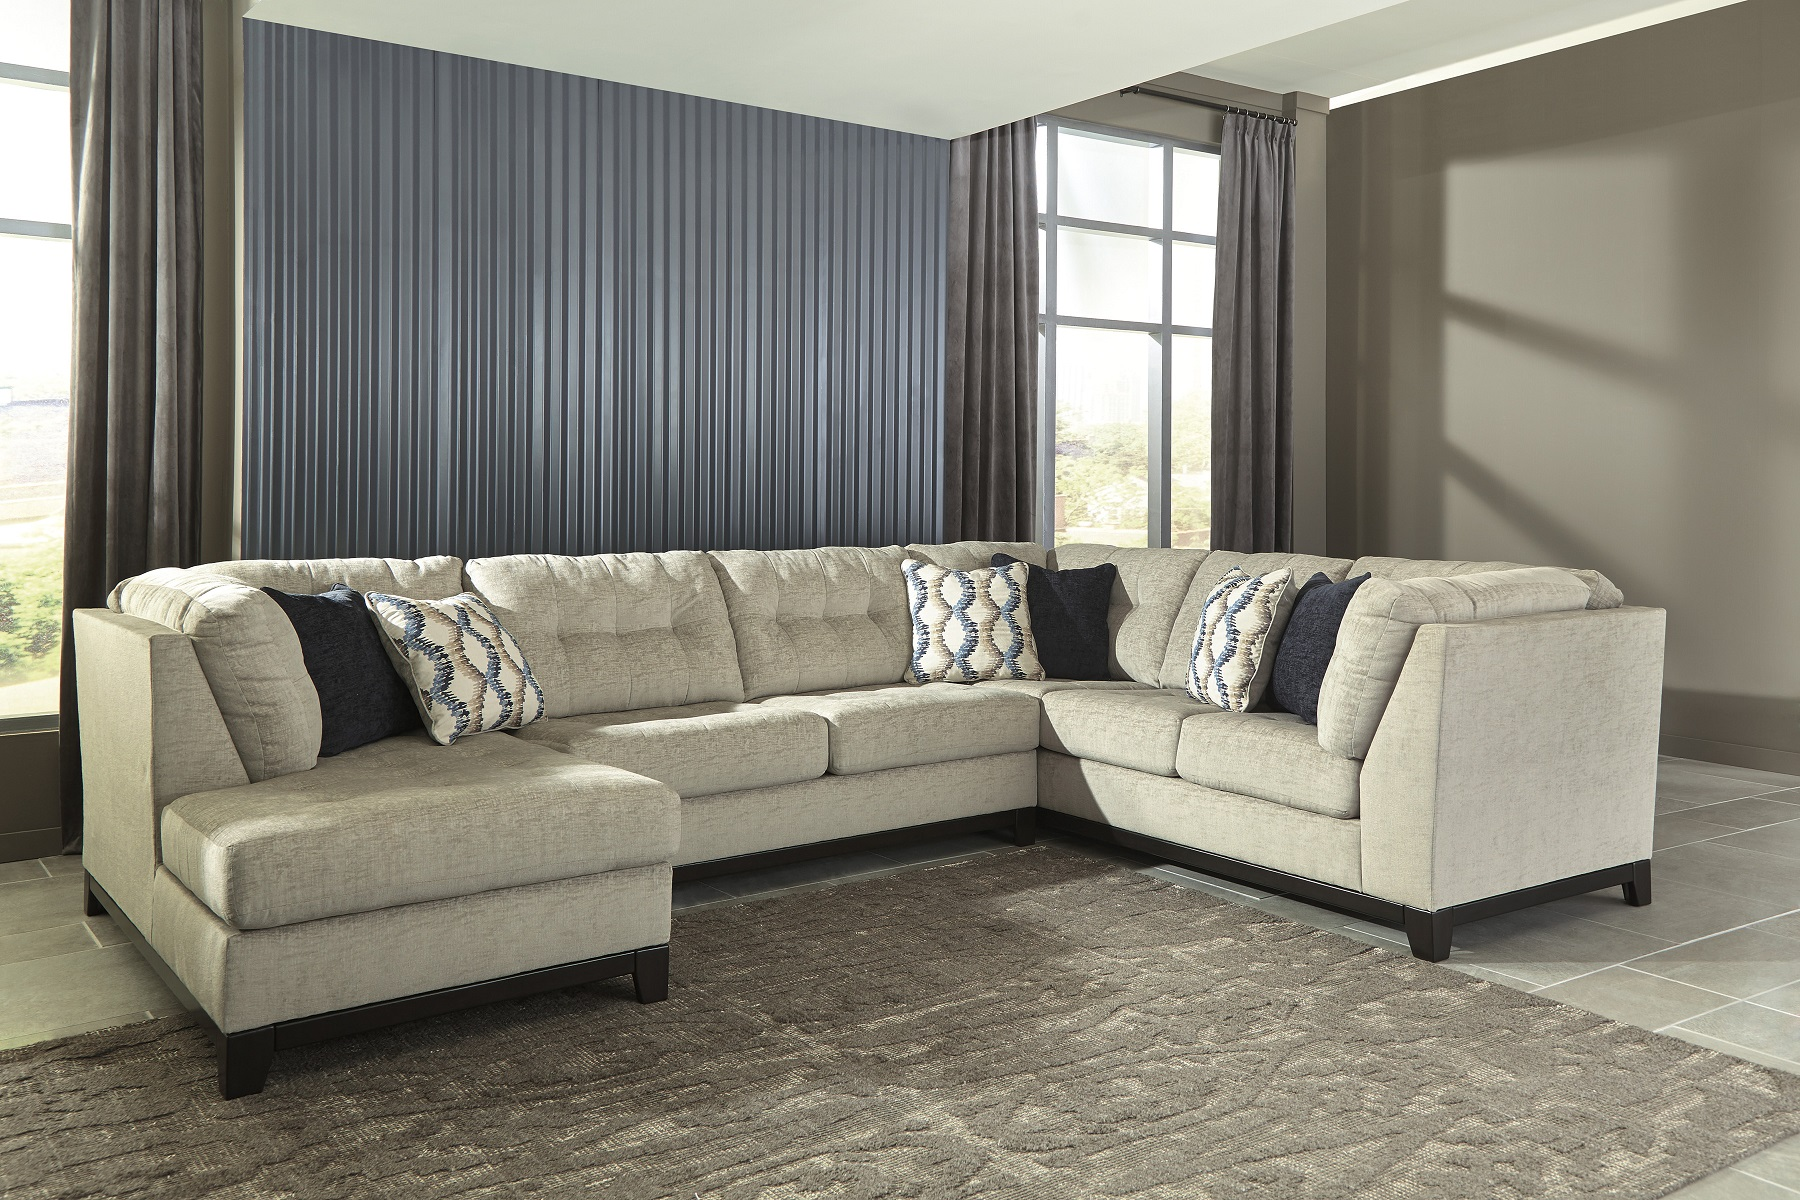 Beckendorf 1500416 by Ashley Sectional Sofa Stone Shade